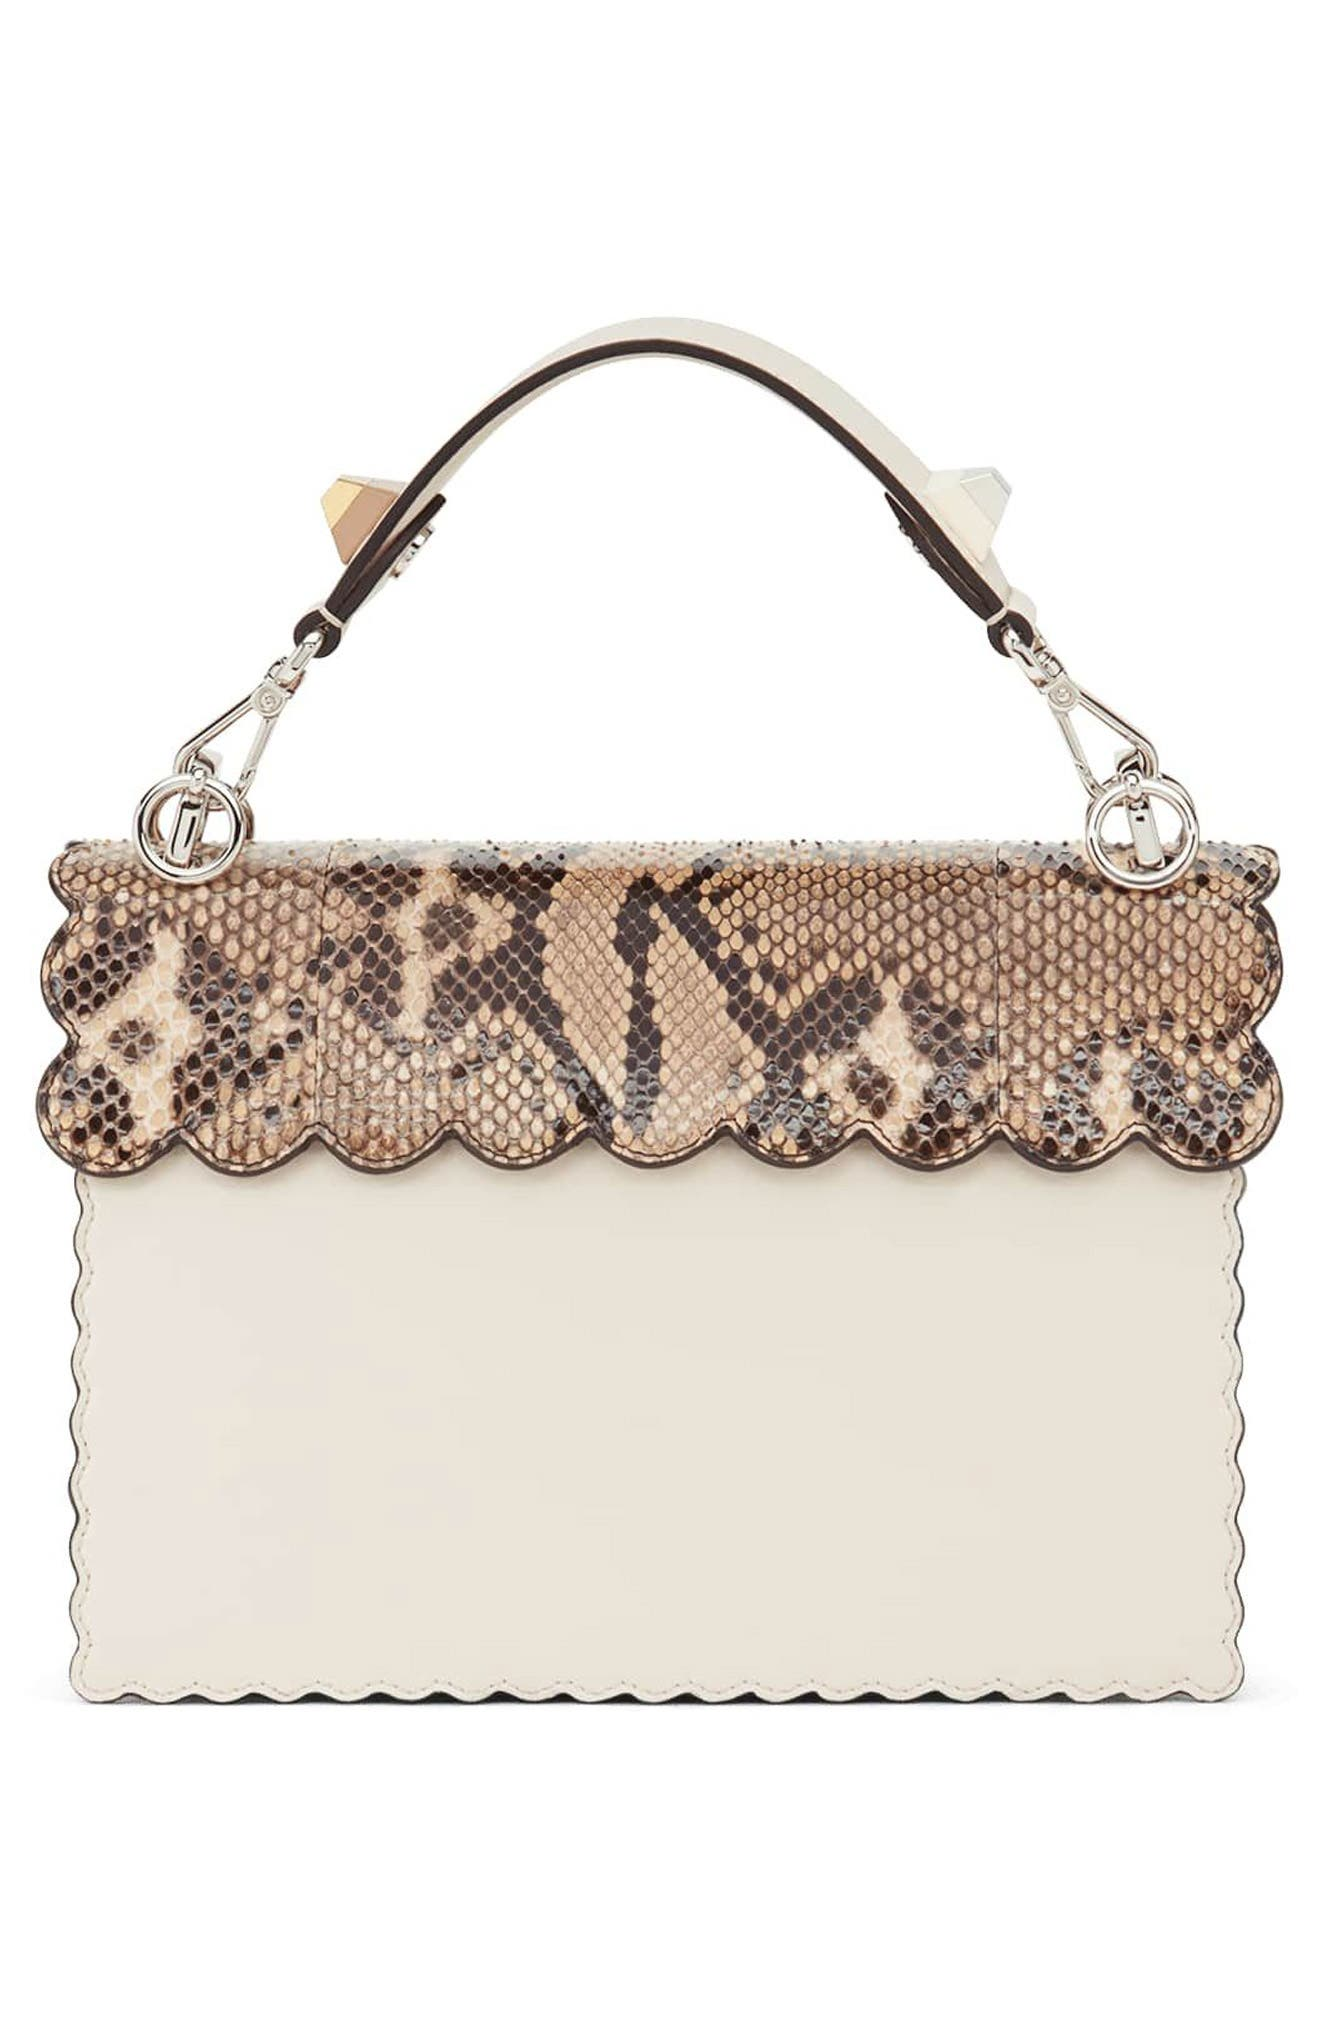 Small Kan I Genuine Python & Calfskin Shoulder Bag,                             Alternate thumbnail 2, color,                             CAMELIA/ MAKEUP/ PYTHON